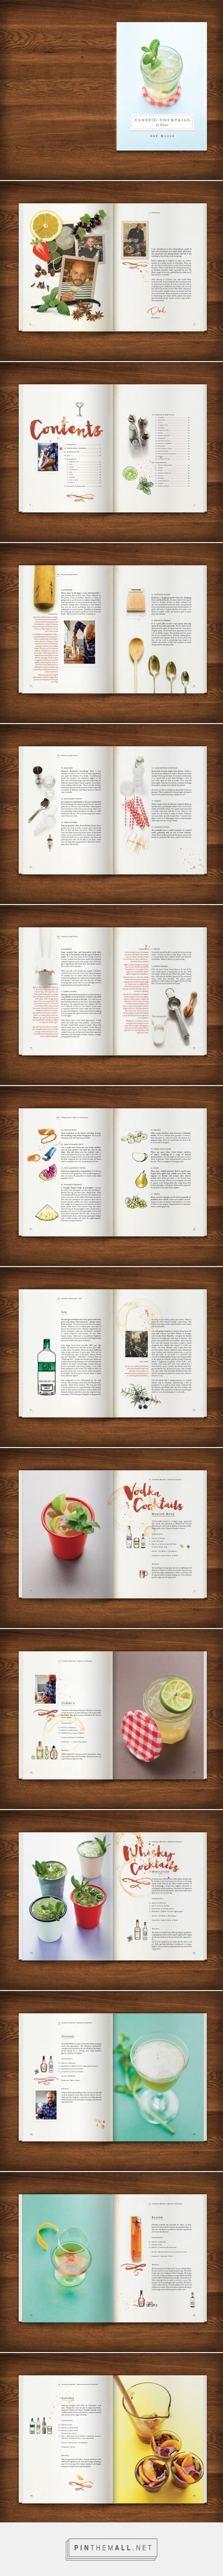 Designed by www.artistictype.co.uk - Cocktail Recipe Book design for Dre Masso. The brief was to design a recipe book for the home bartender that looked fun, relaxed and well used. All of the ingredients from brand neutral premium spirits to fruit garnishes were hand illustrated and whilst there was a strict grid used in the page layout design, each spread had its own visual identity. Services supplied: graphic design, recipe book design, page layouts, typography and illustration.